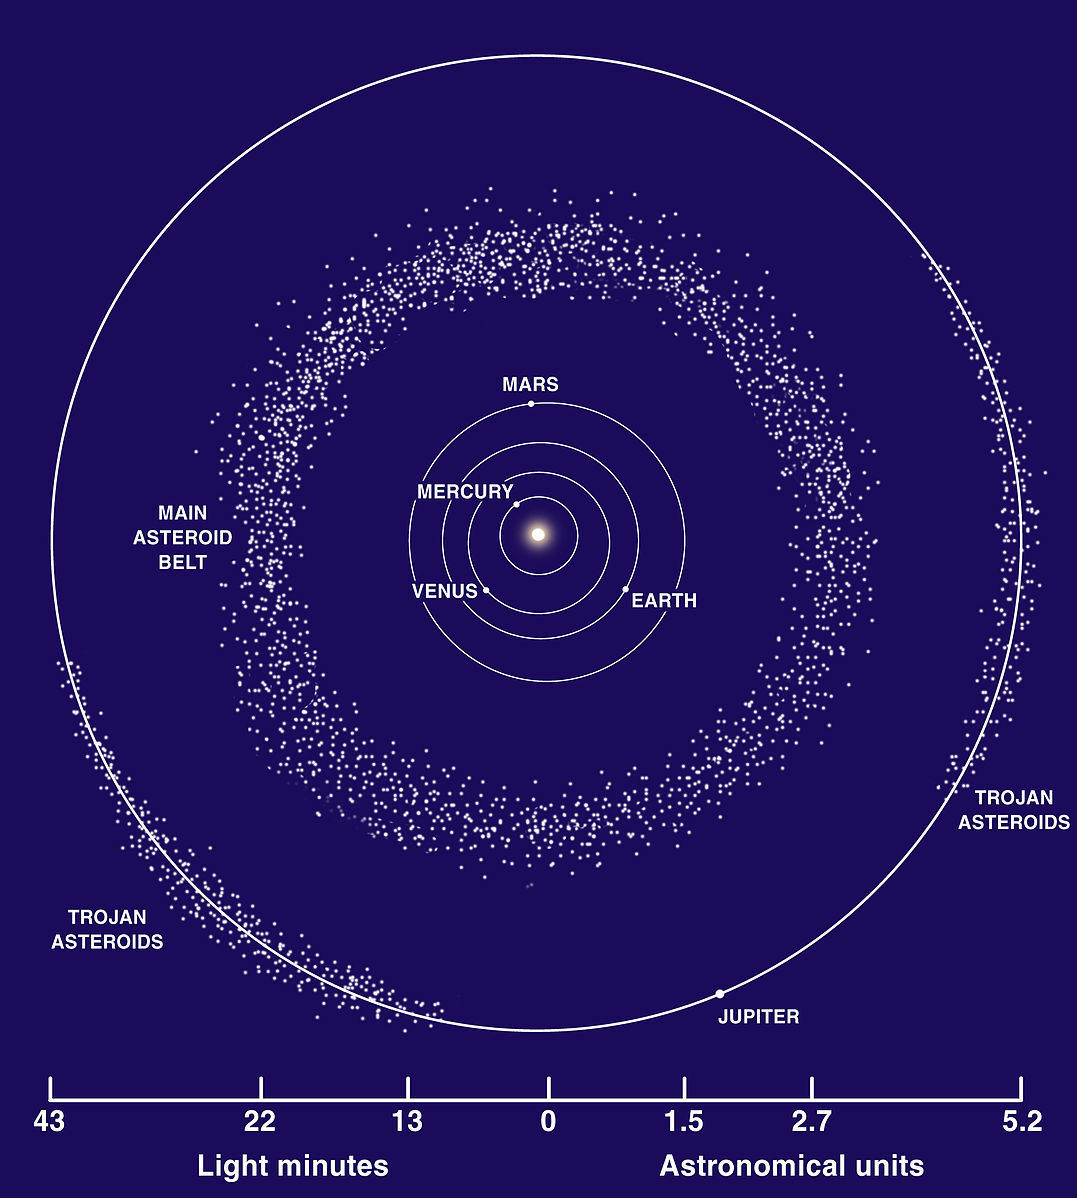 Teach astronomy solar system debris and formation formation of the solar system diagram of where the main belt of asteriods and trojan asteroids are ccuart Image collections